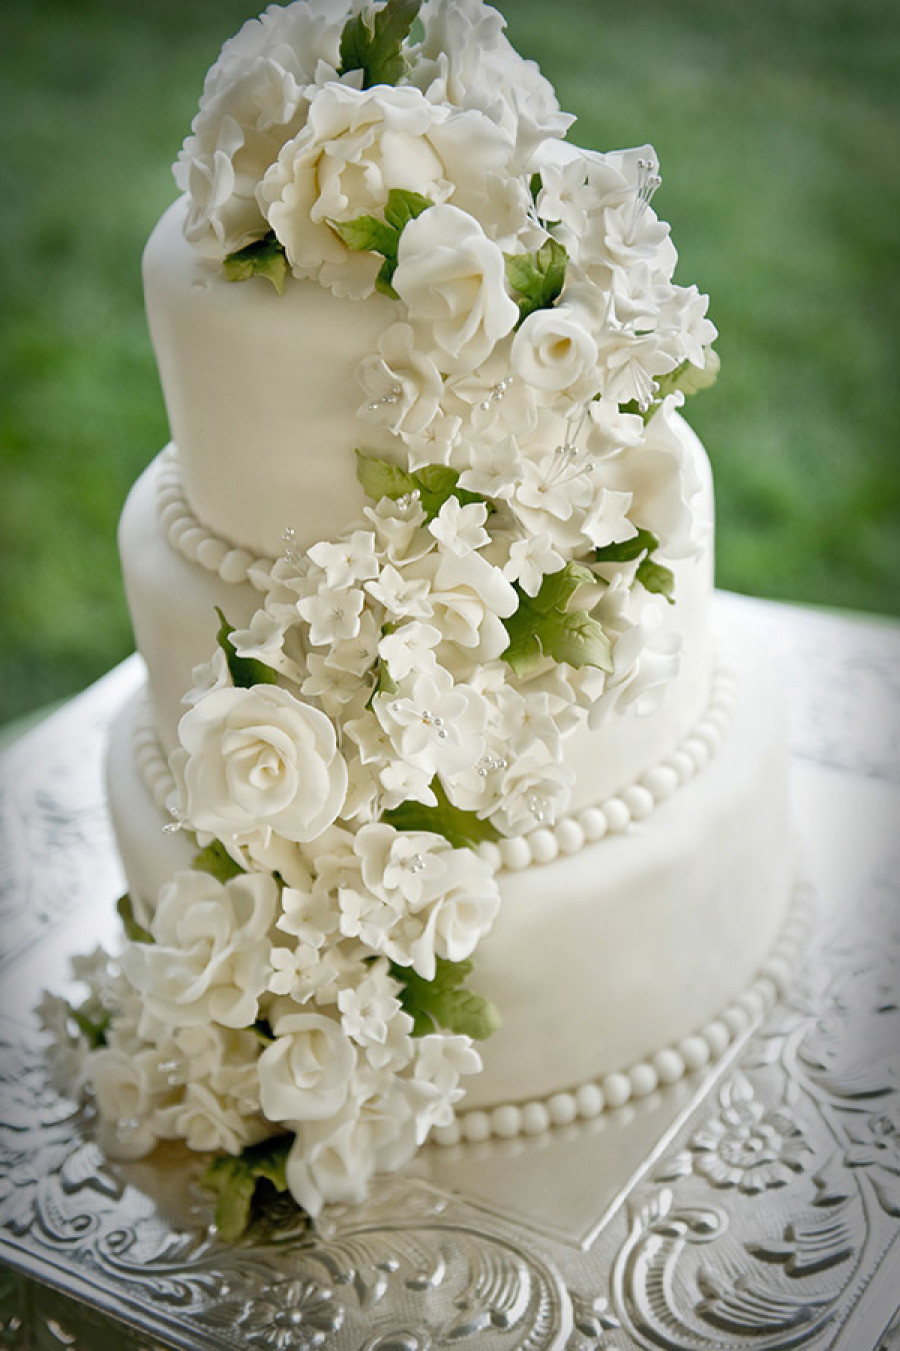 Gorgeous Wedding Cakes  25 Jaw Dropping Beautiful Wedding Cake Ideas MODwedding